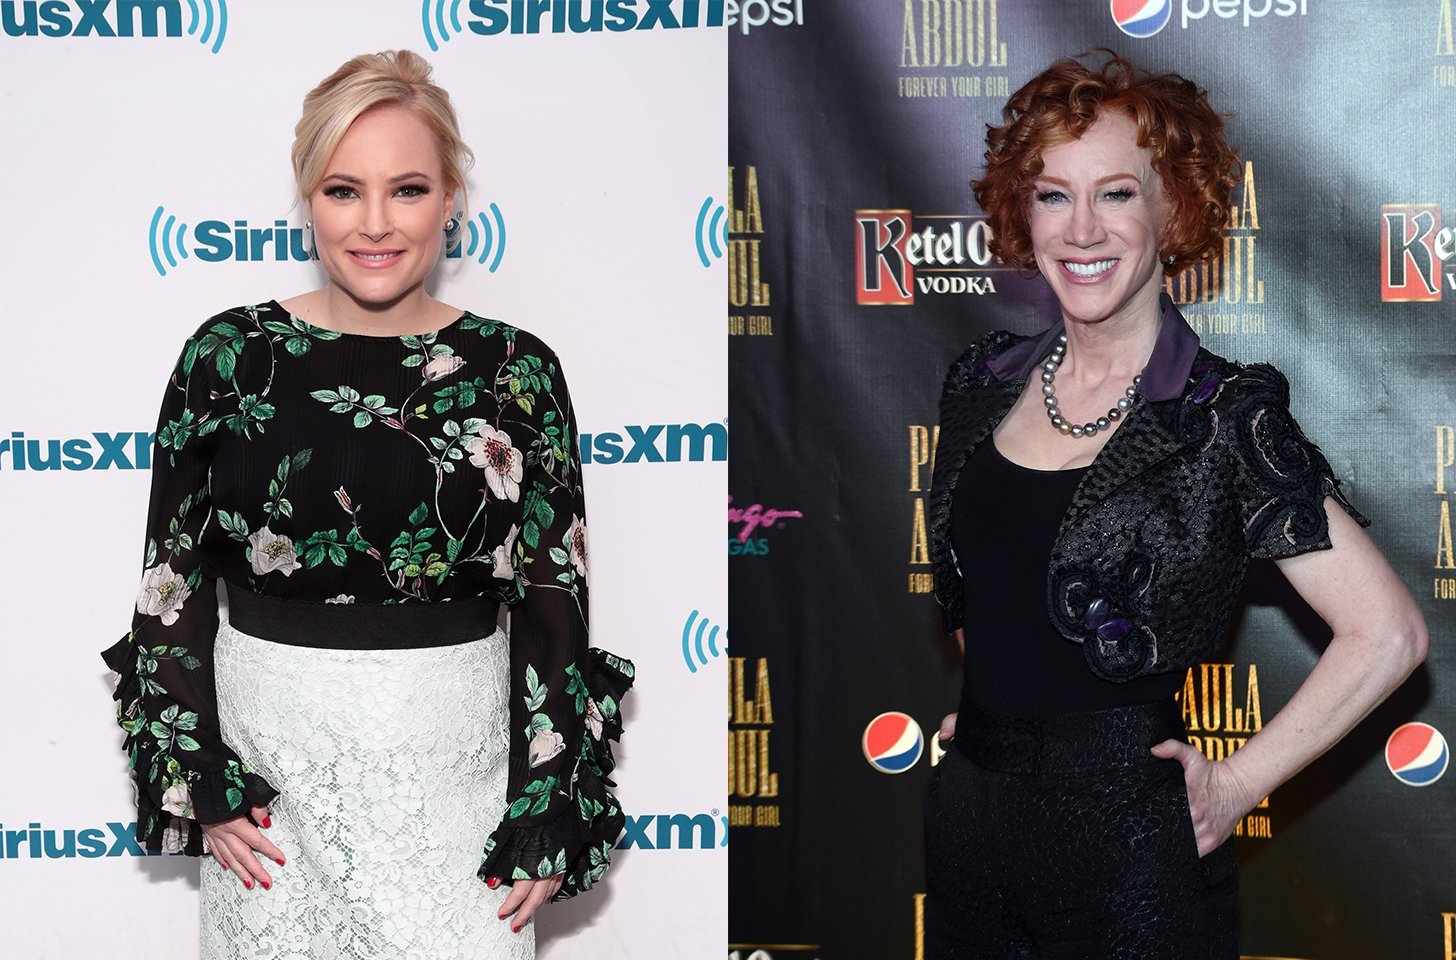 Meghan McCain Demands An Apology From Kathy Griffin After Cancer Announcement